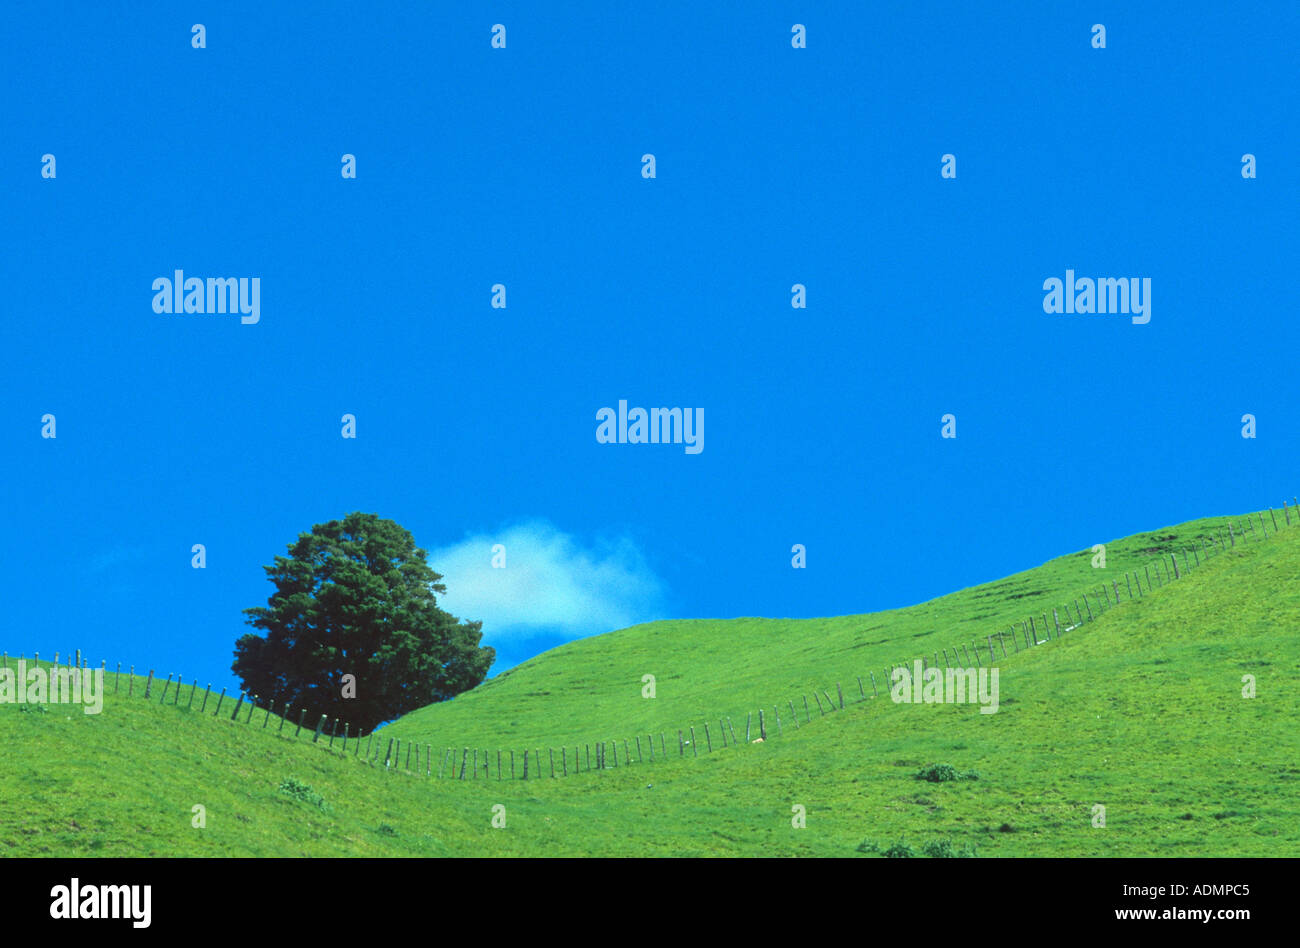 tree in meadow along Forgotten World Highway, New Zealand, Northern Island - Stock Image